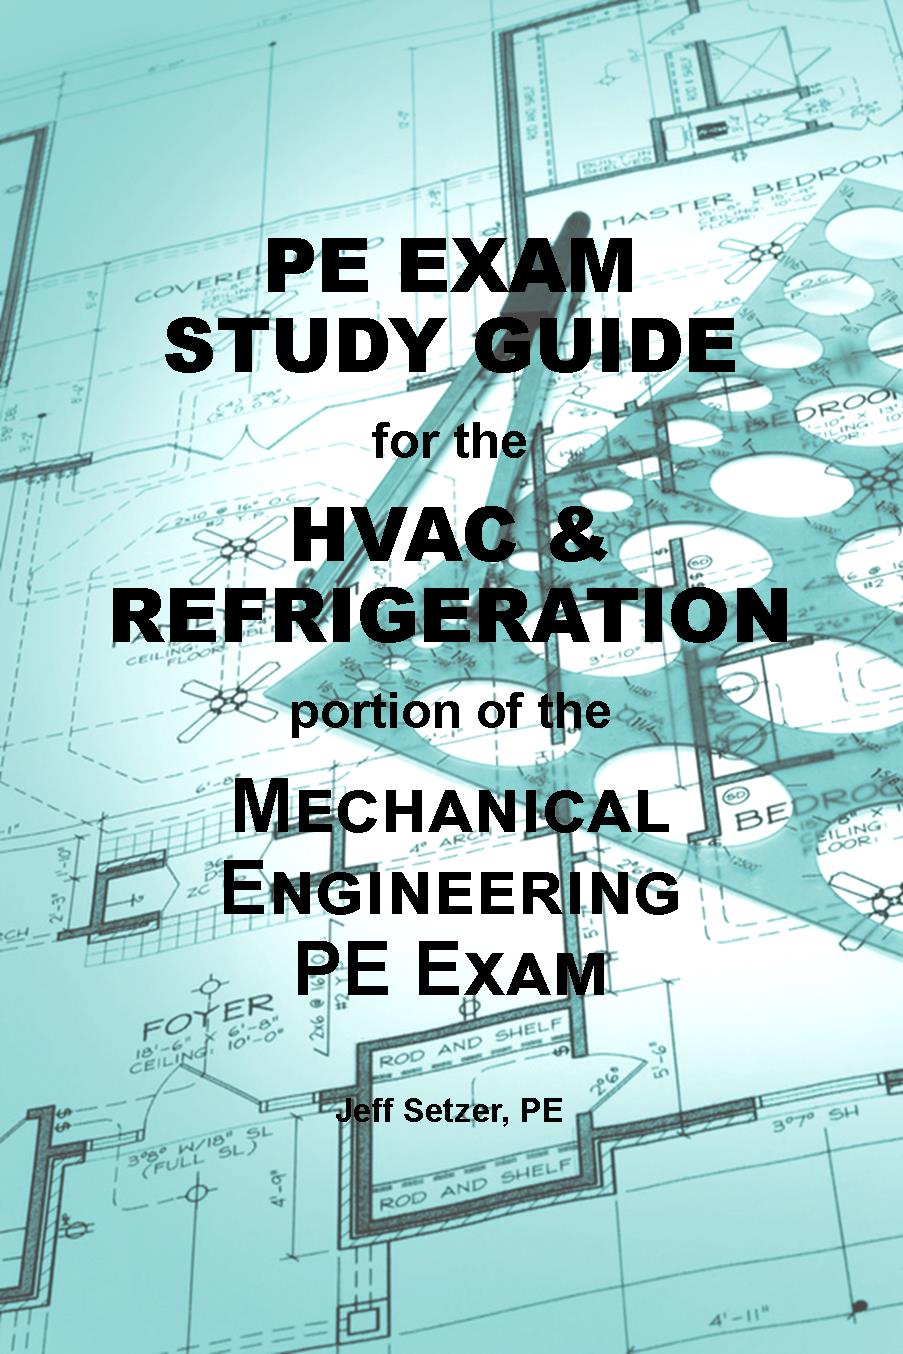 Mechanical Engineering PE Exam  Information Insights Tips  Tools for Engineering Design and